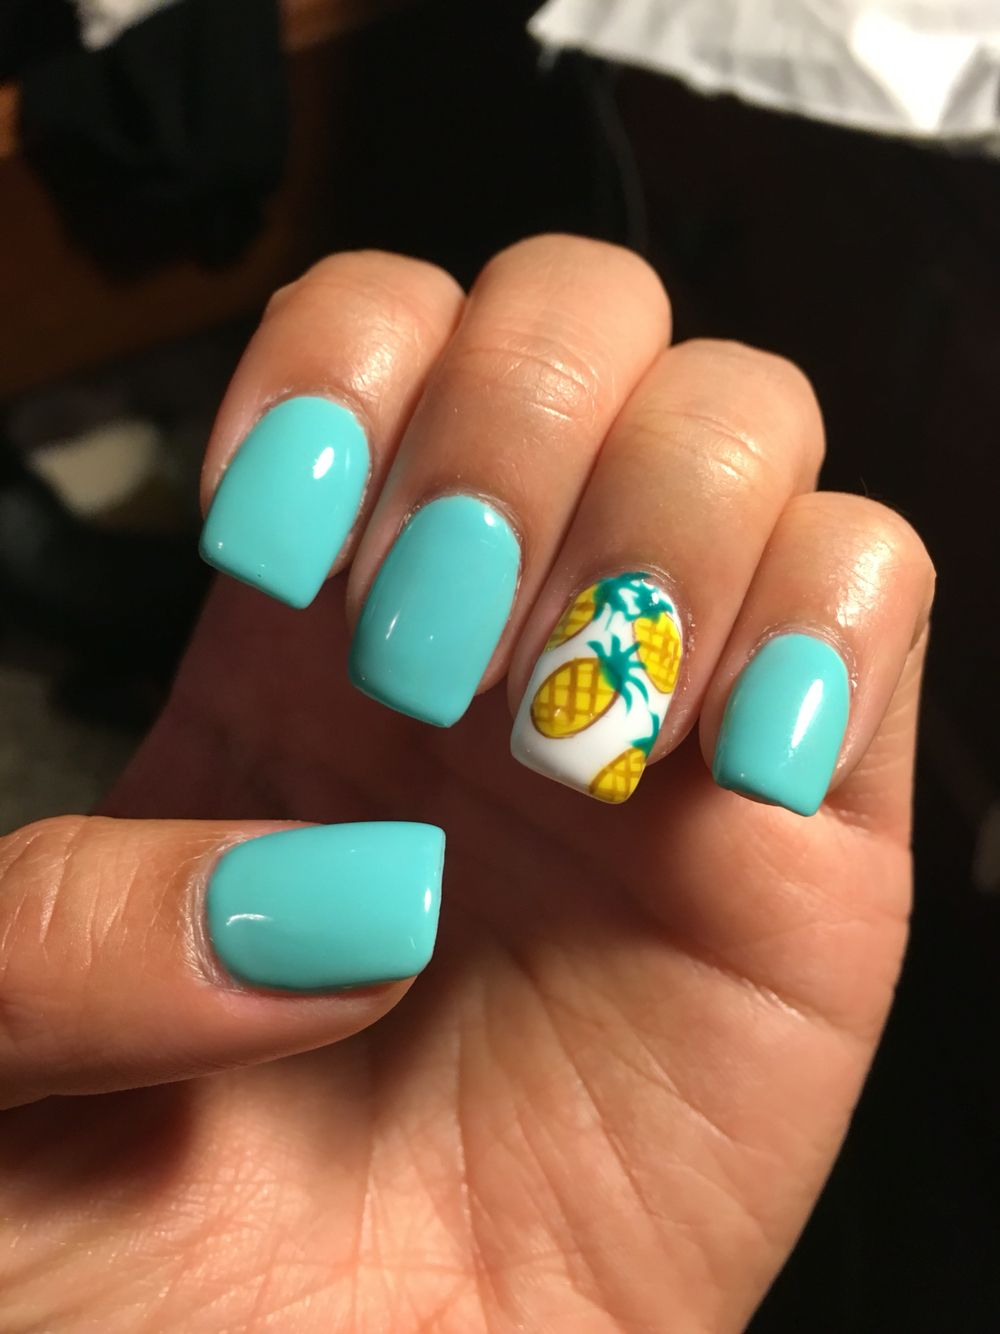 Summer nails! Teal acrylics with pineapples | My nails ...